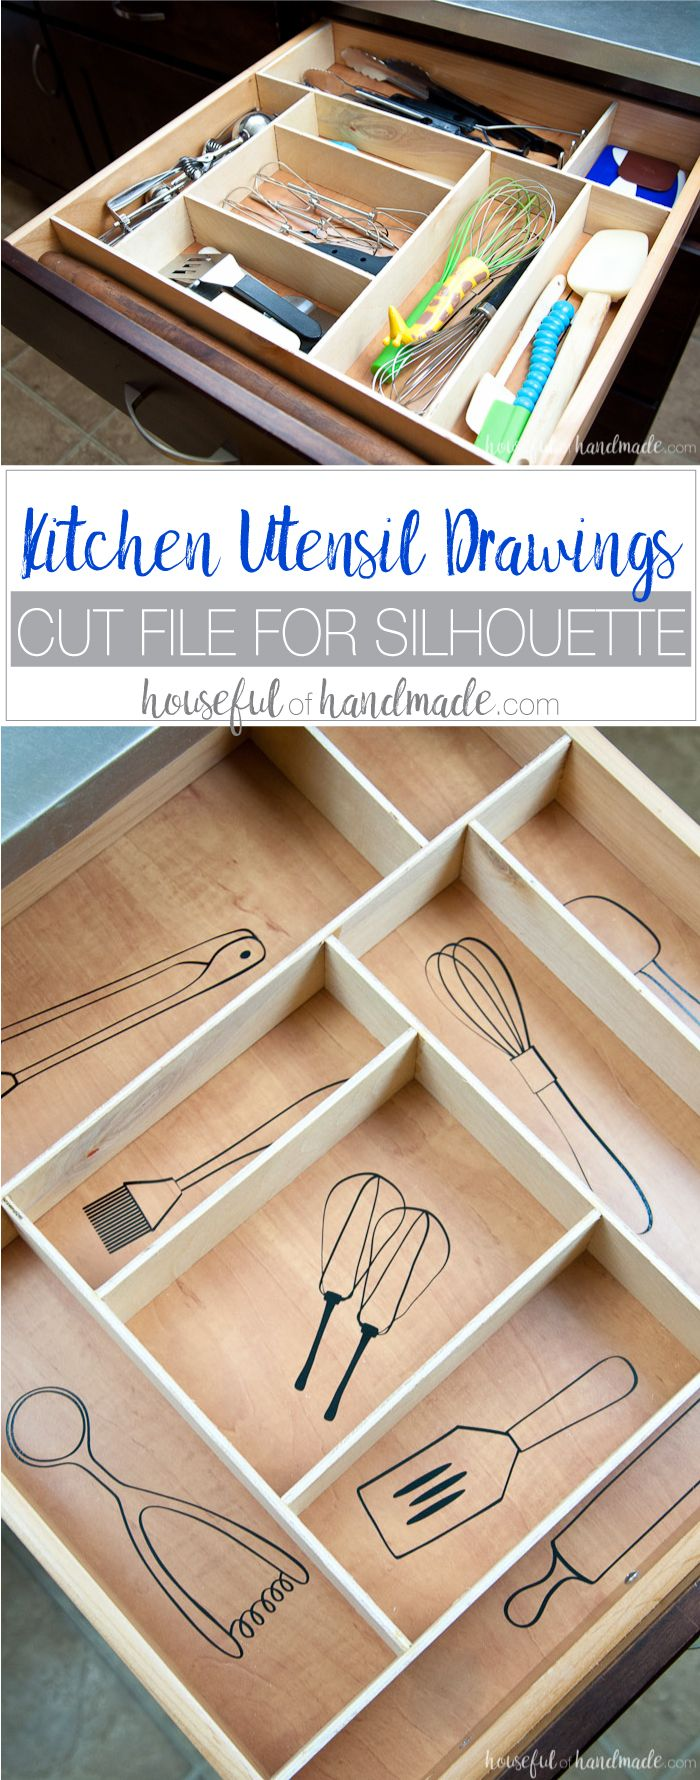 Organize your kitchen drawers and keep them organized with these fun kitchen ute...